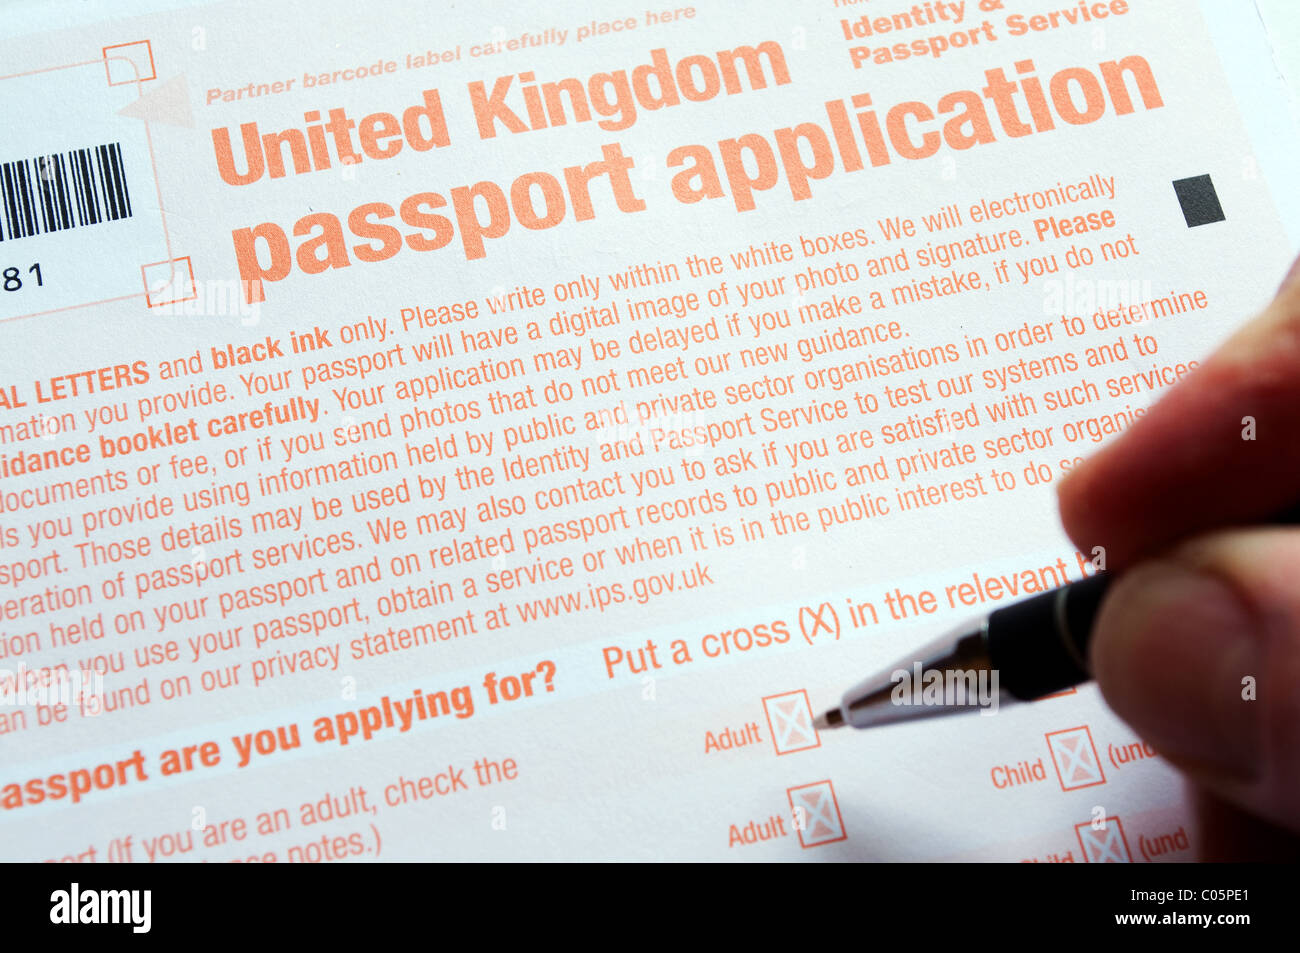 Passport application form stock photos passport application form a united kingdom passport application form being filled in stock image falaconquin